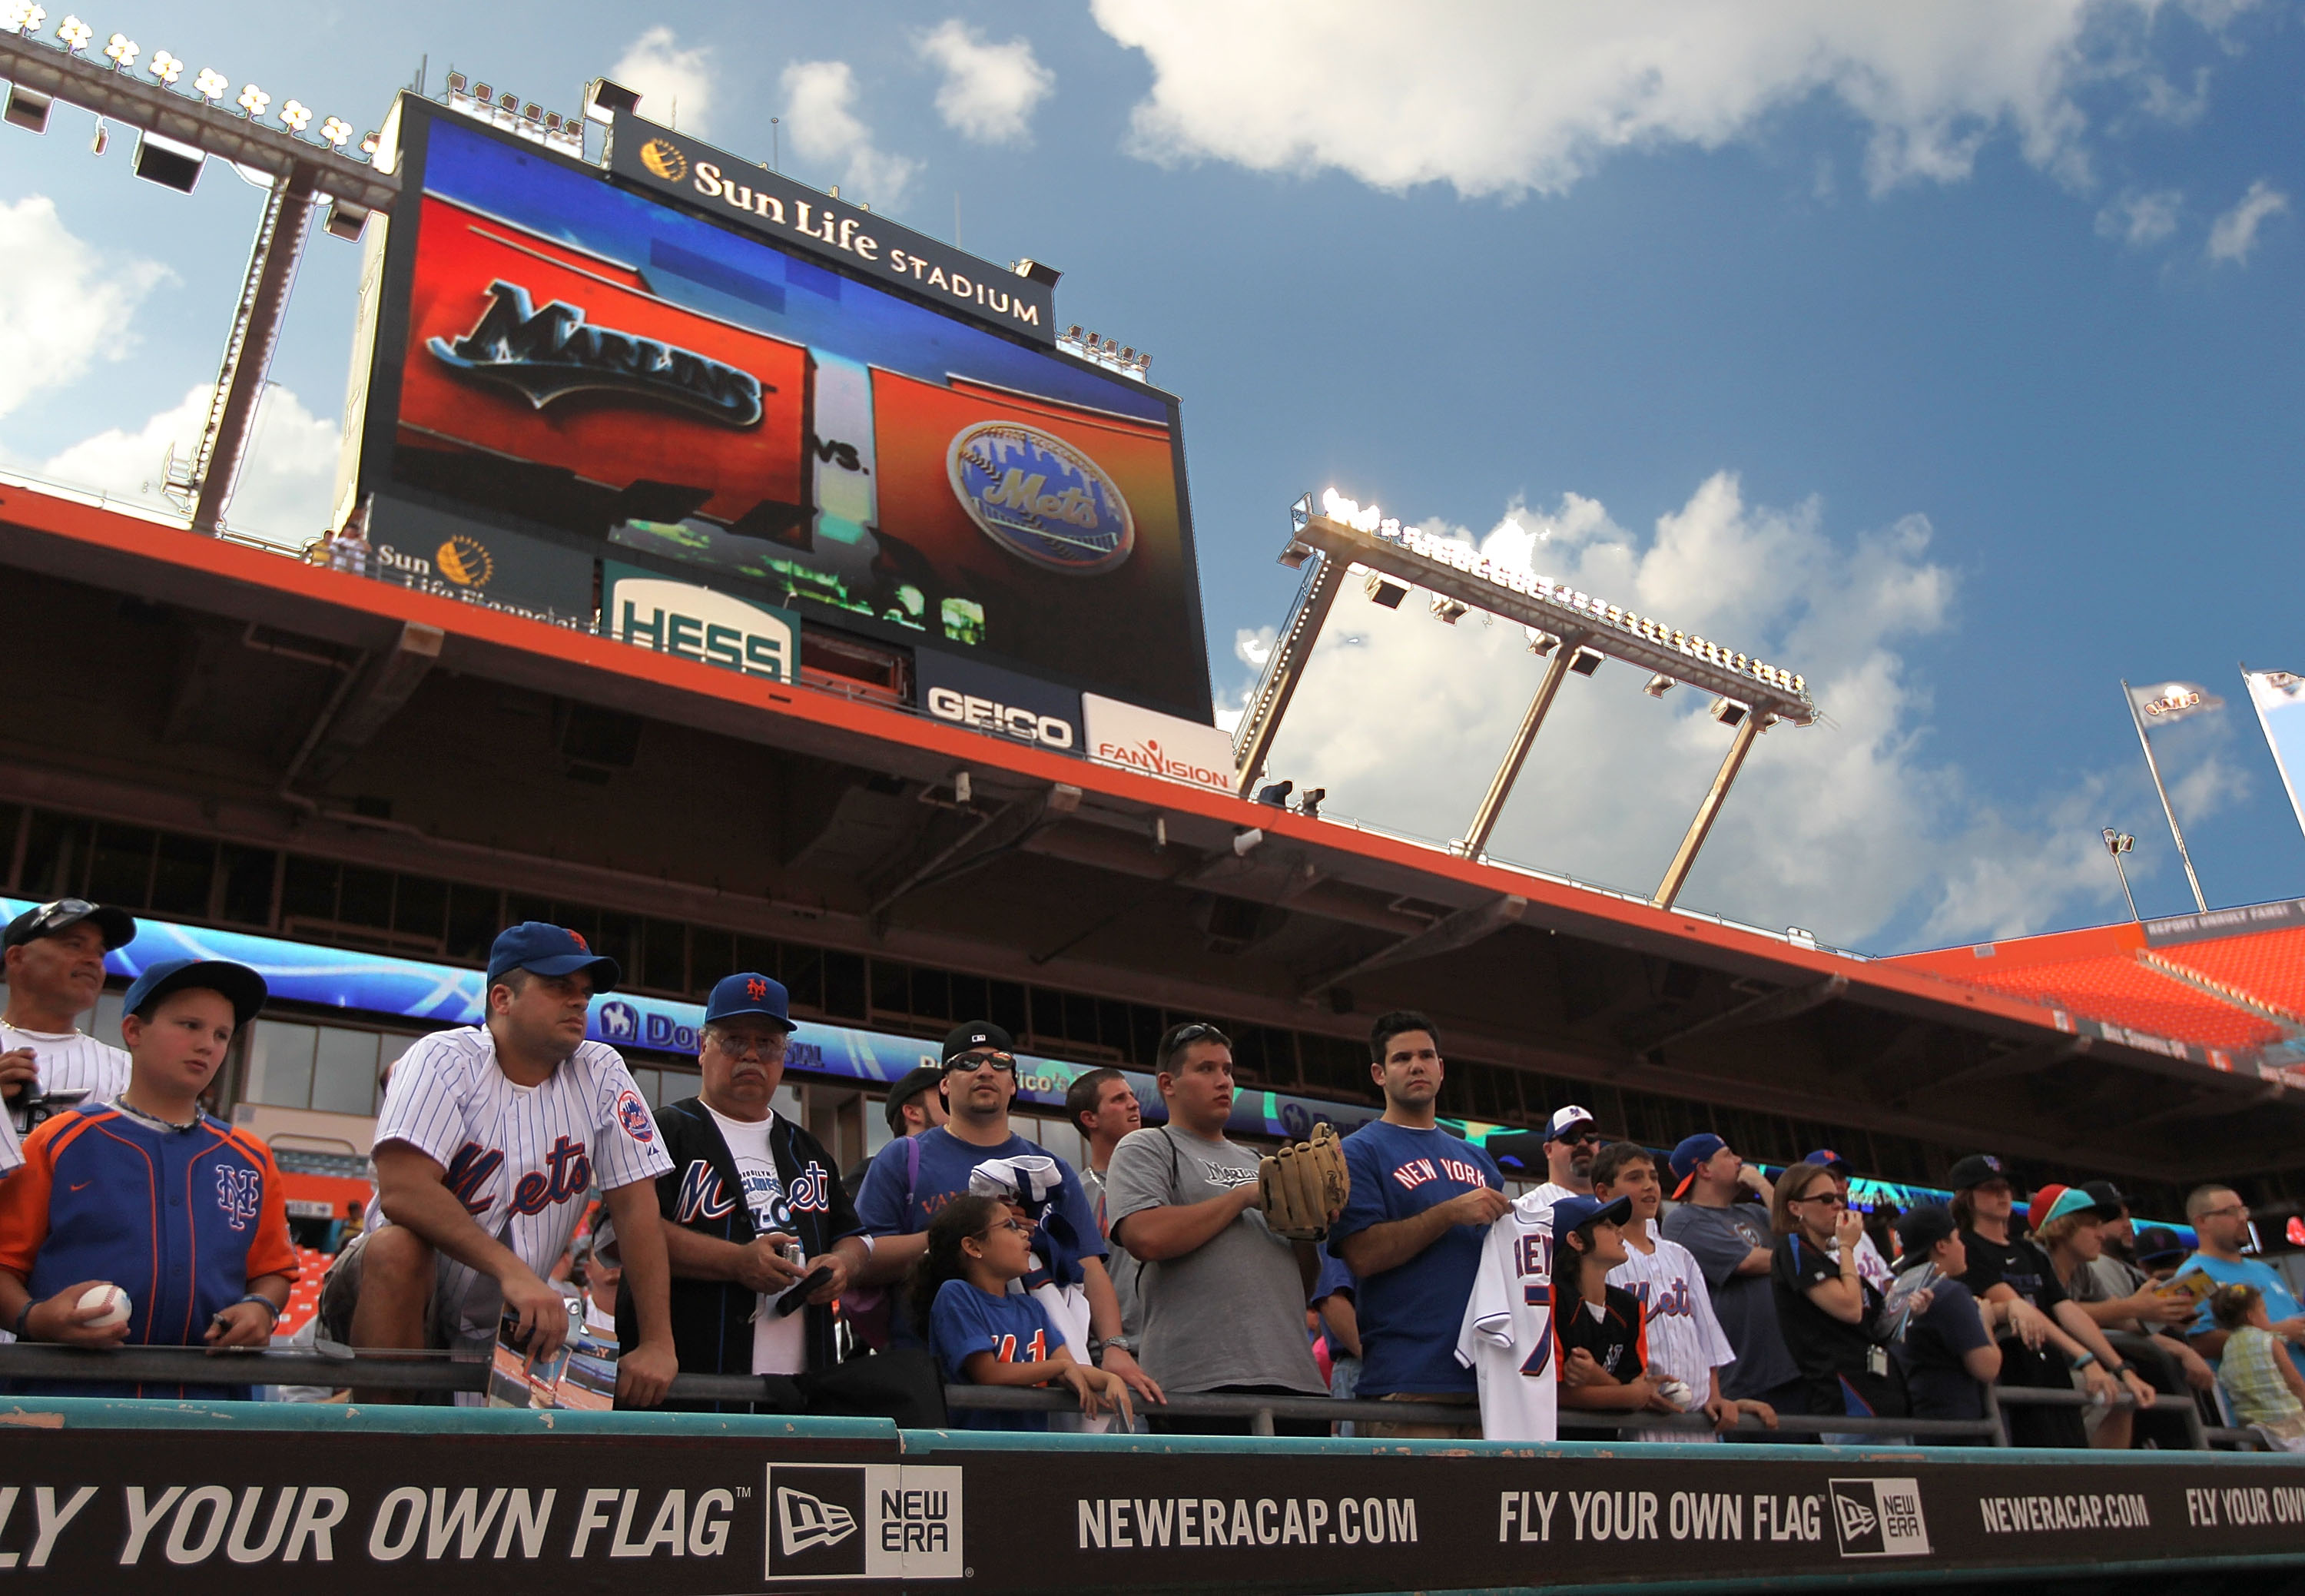 MIAMI GARDENS, FL - APRIL 01: New York Mets fans watch batting practice during opening day against the Florida Marlins at Sun Life Stadium on April 1, 2011 in Miami Gardens, Florida.  (Photo by Mike Ehrmann/Getty Images)